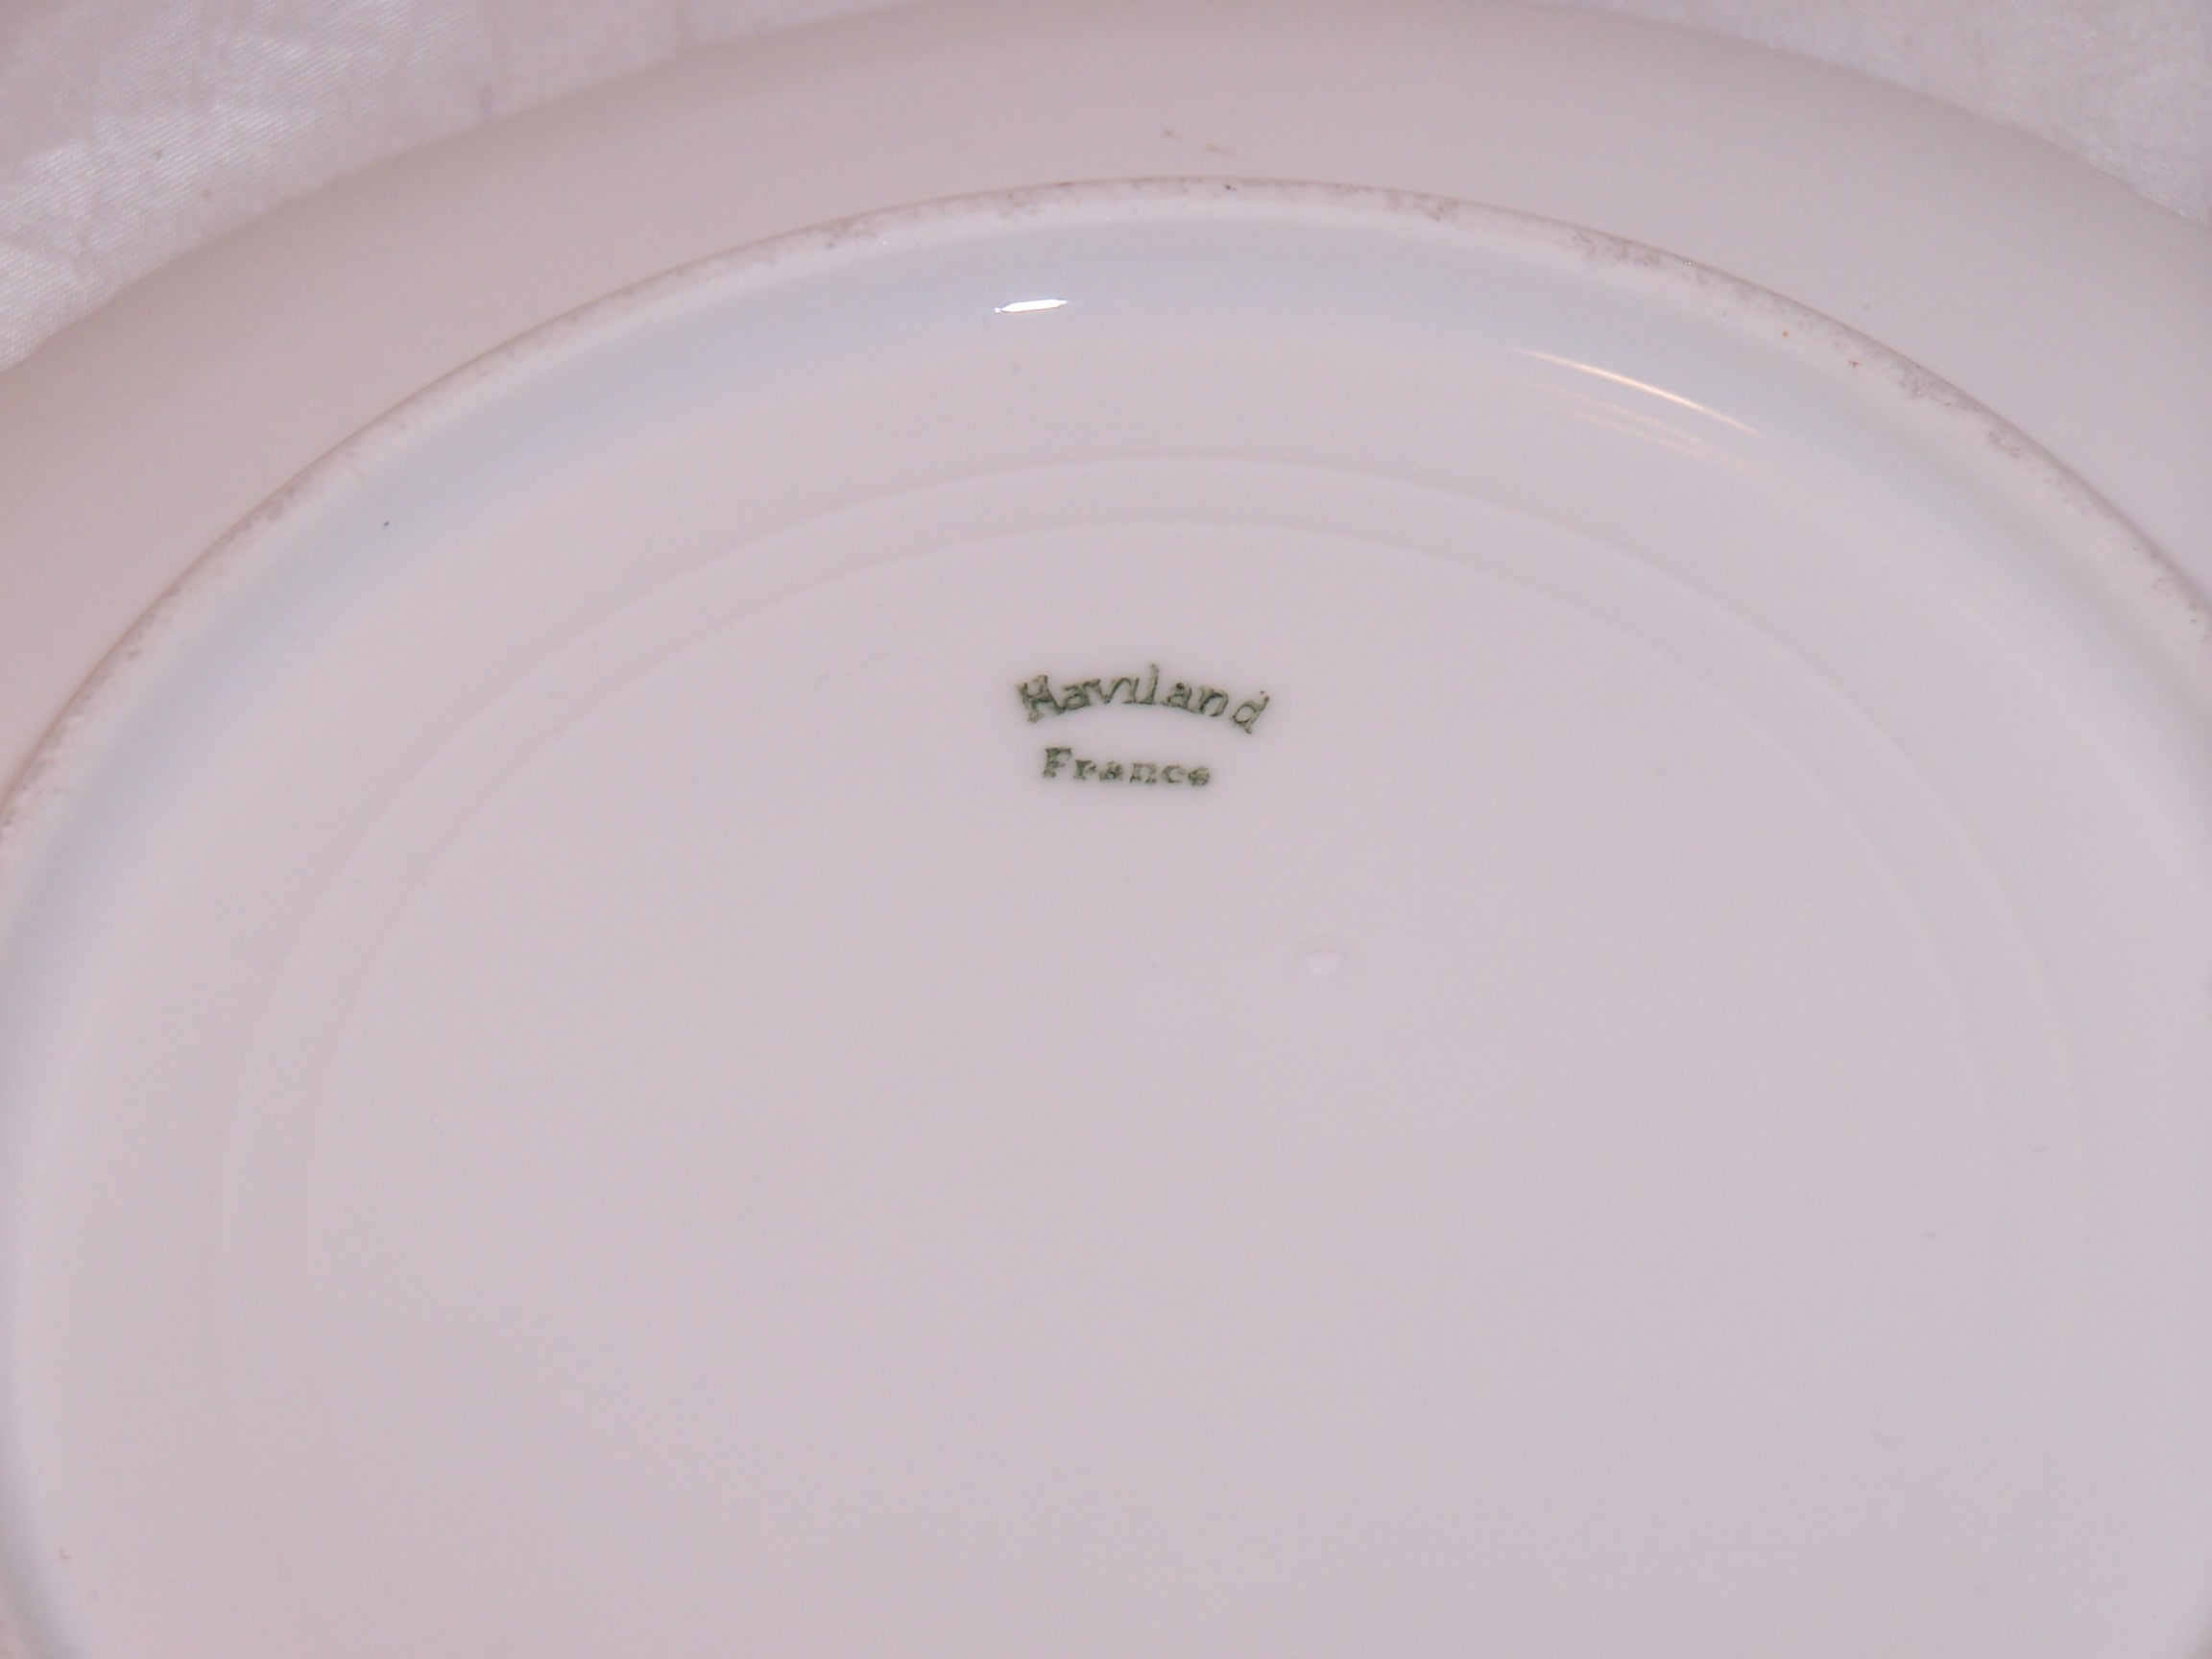 Image 2 of Haviland France Cherry Branch Plate, Artist Signed Magoris